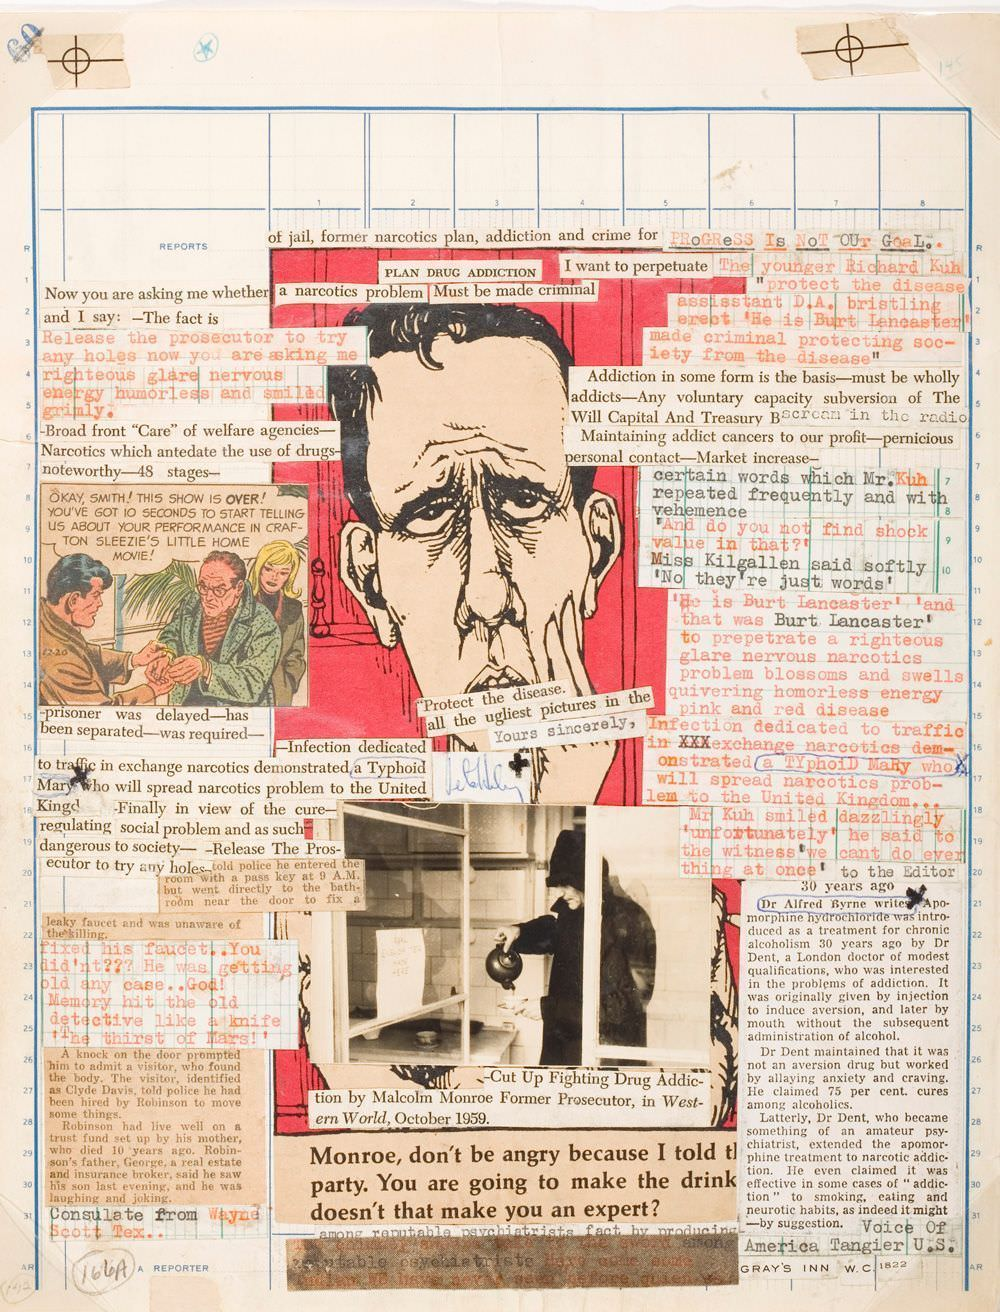 William S. Burroughs, Brion Gysin, Untitled (p. 157), um 1965, Mixed media/assemblage/collage, Los Angeles County Museum.